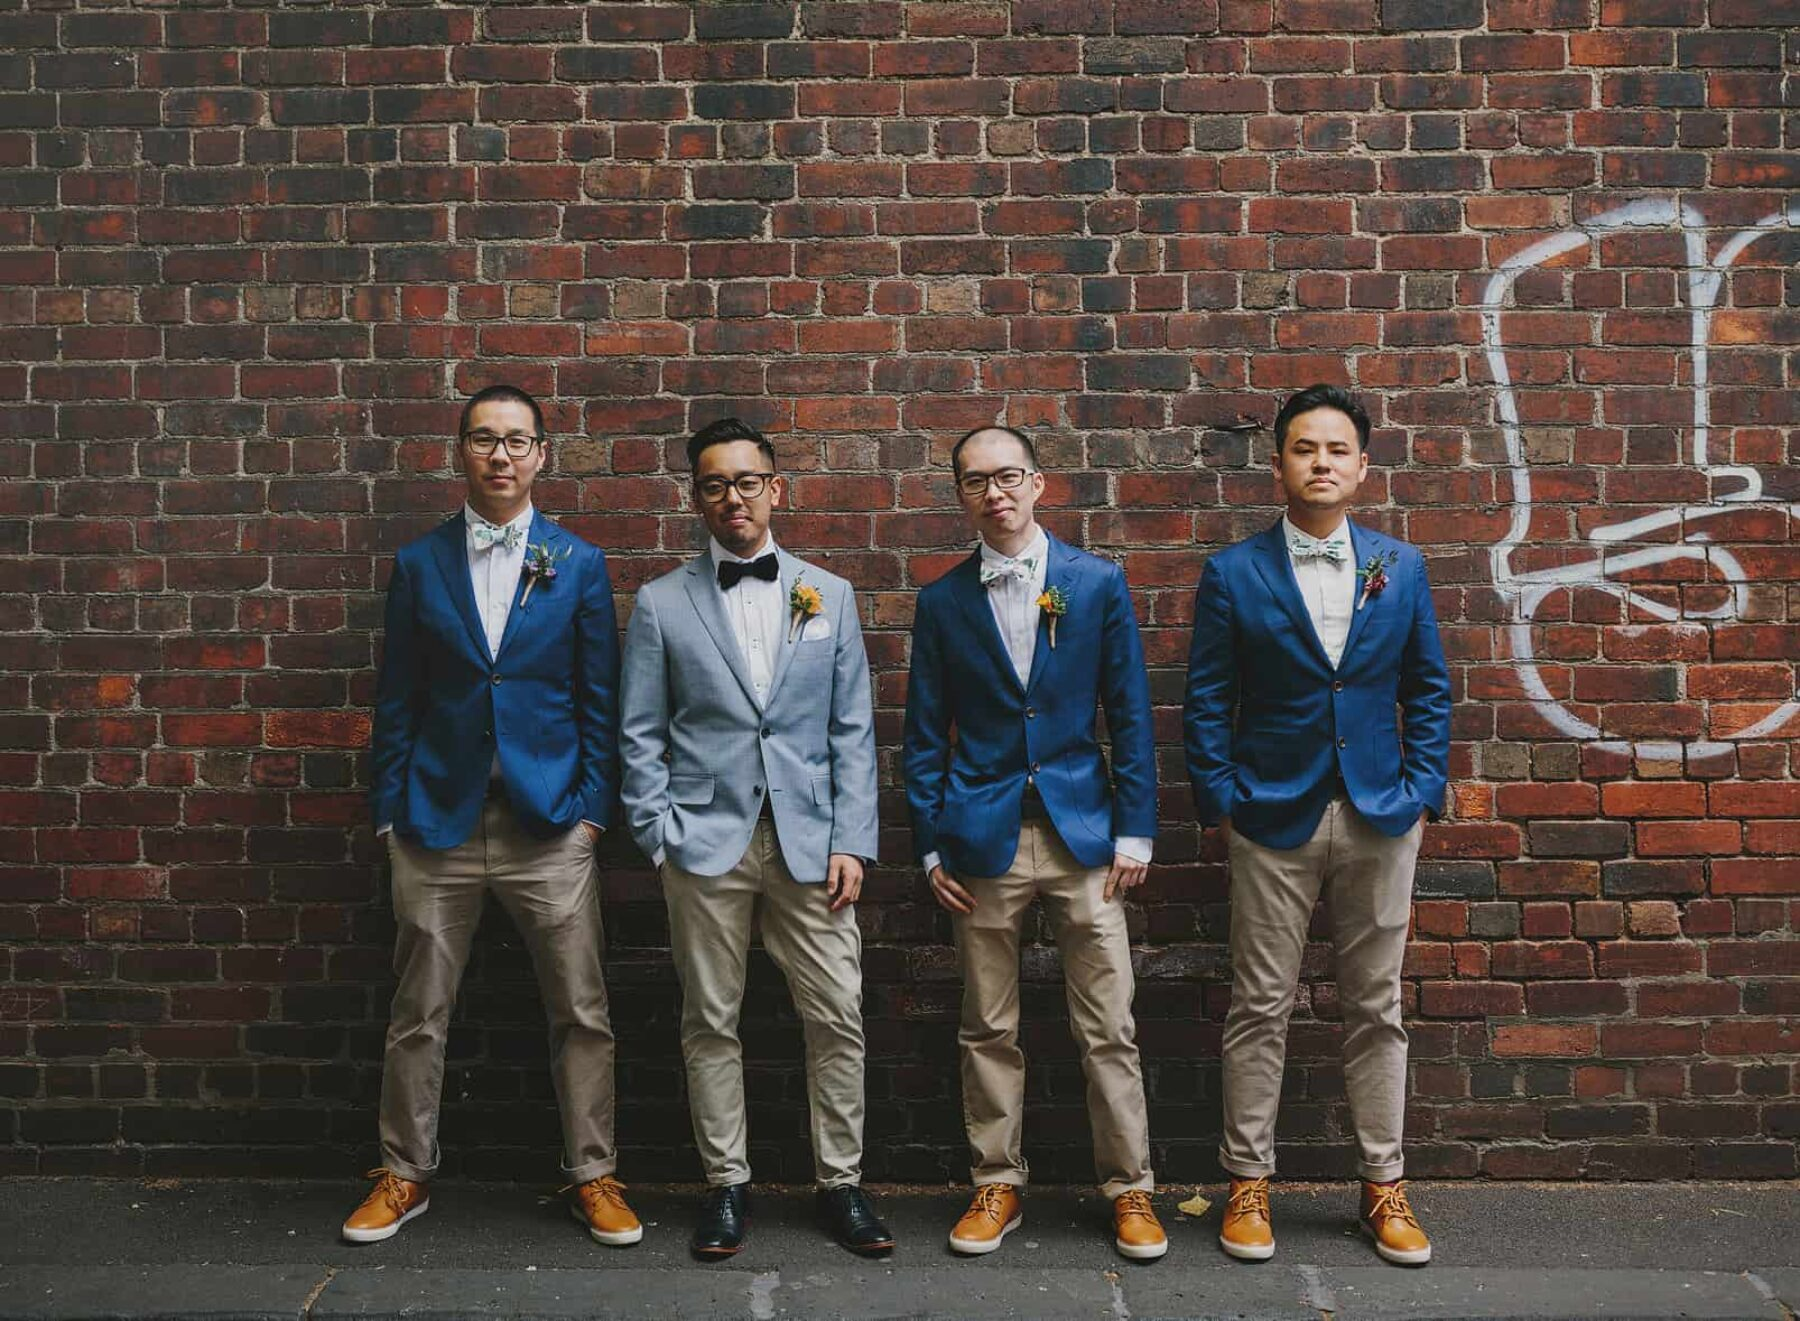 Best of 2017: Groom Style | groom and groomsmen in contrasting blues